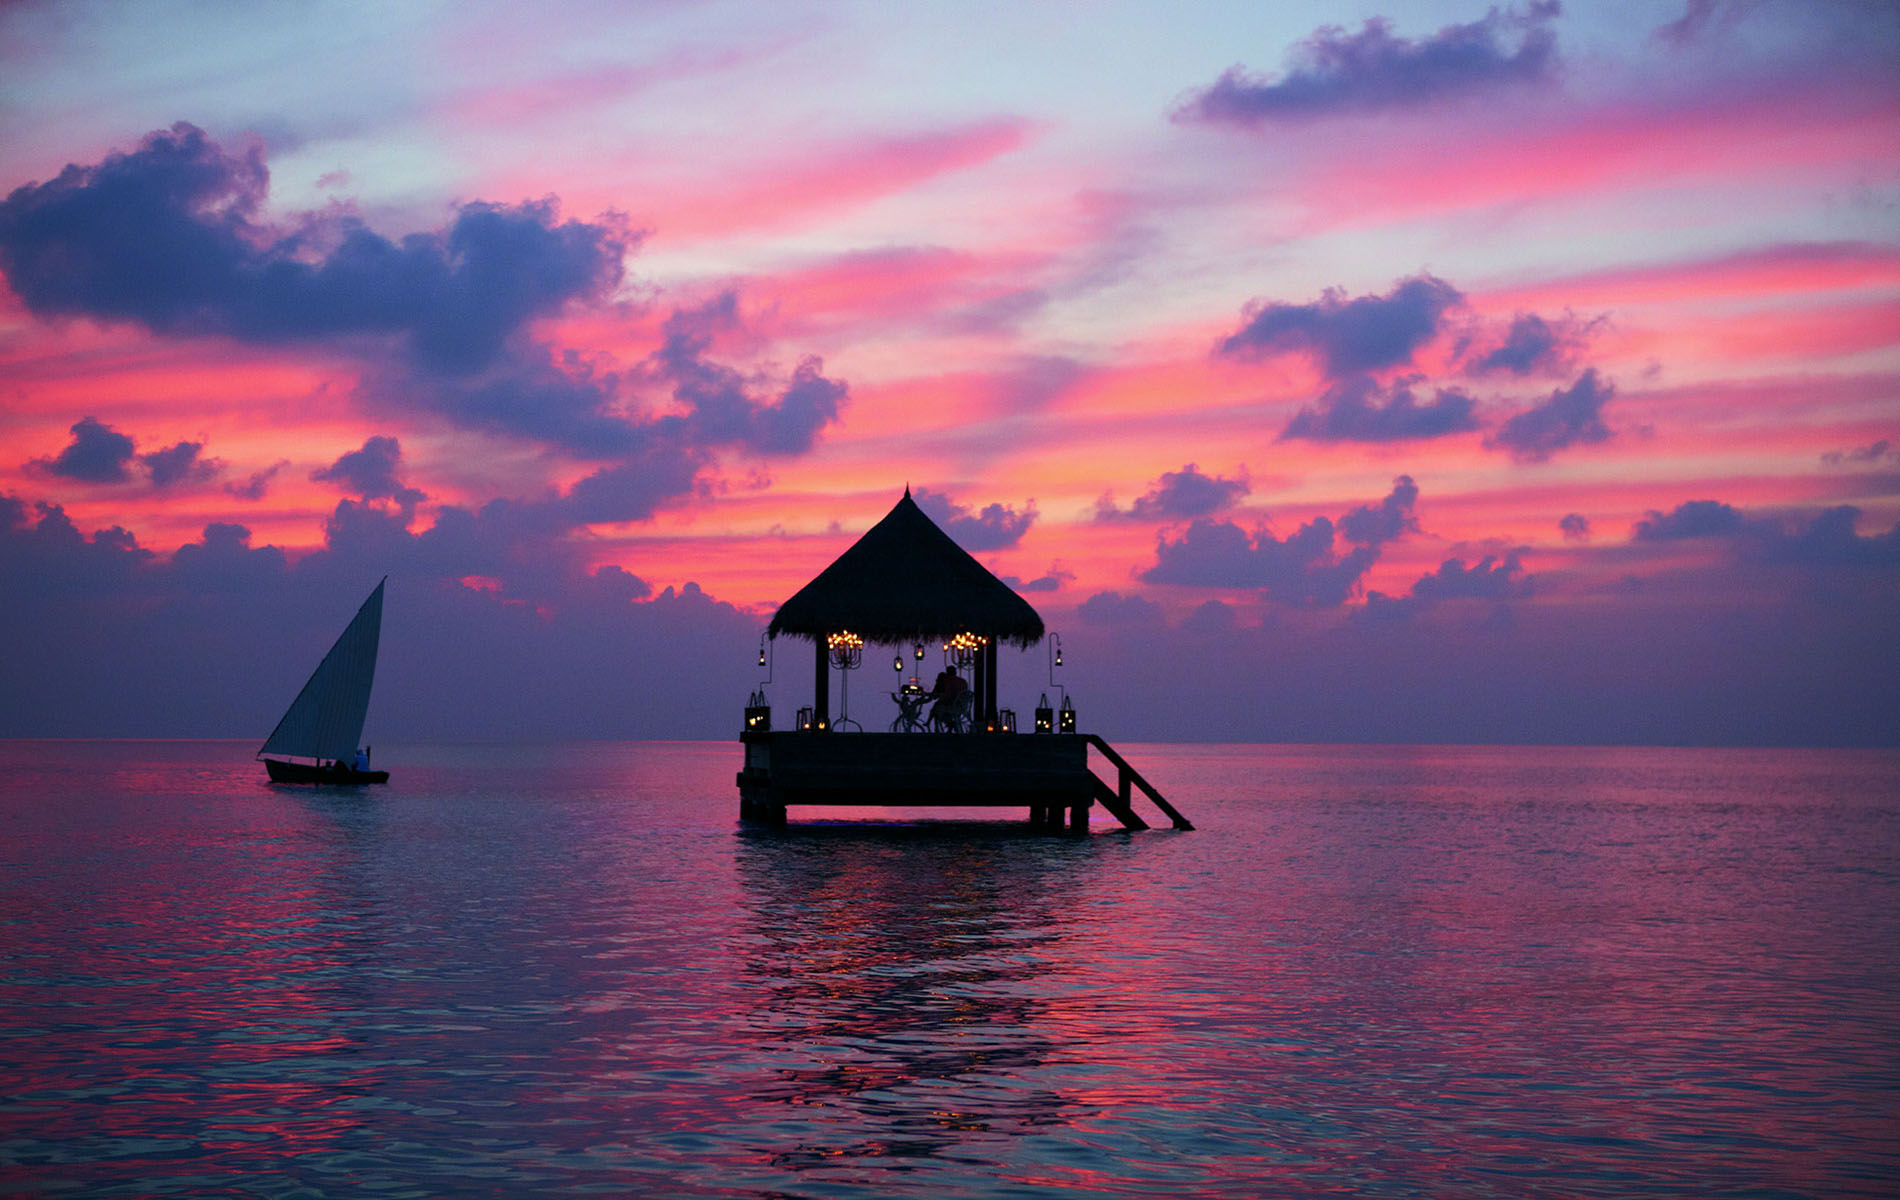 Maldives sunset with a boat and a house